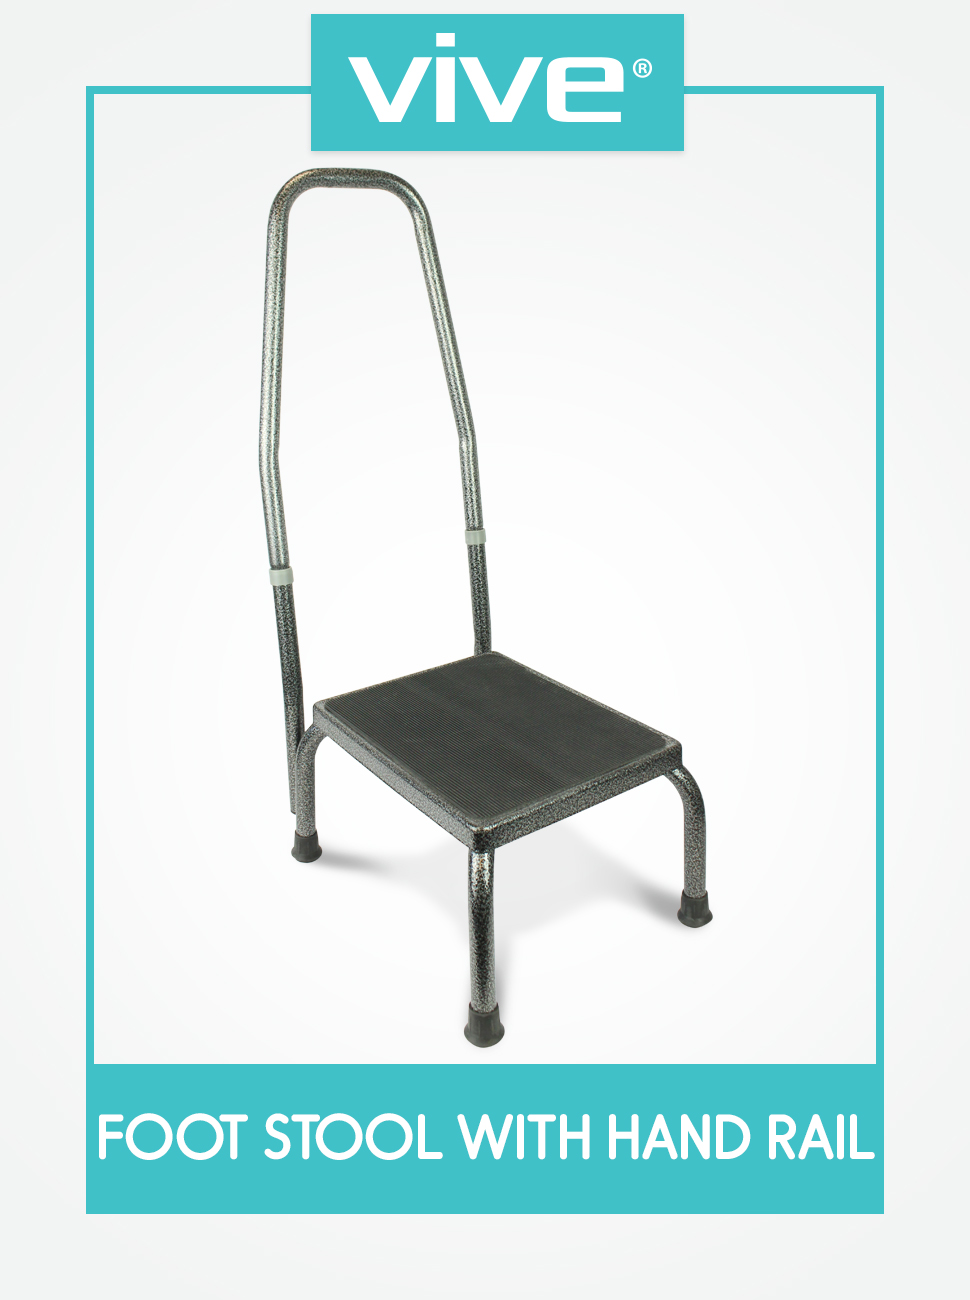 com lbs shop stool werner ladders steel pl stools tools foldable gray at scaffolding capacity handicap step lowes